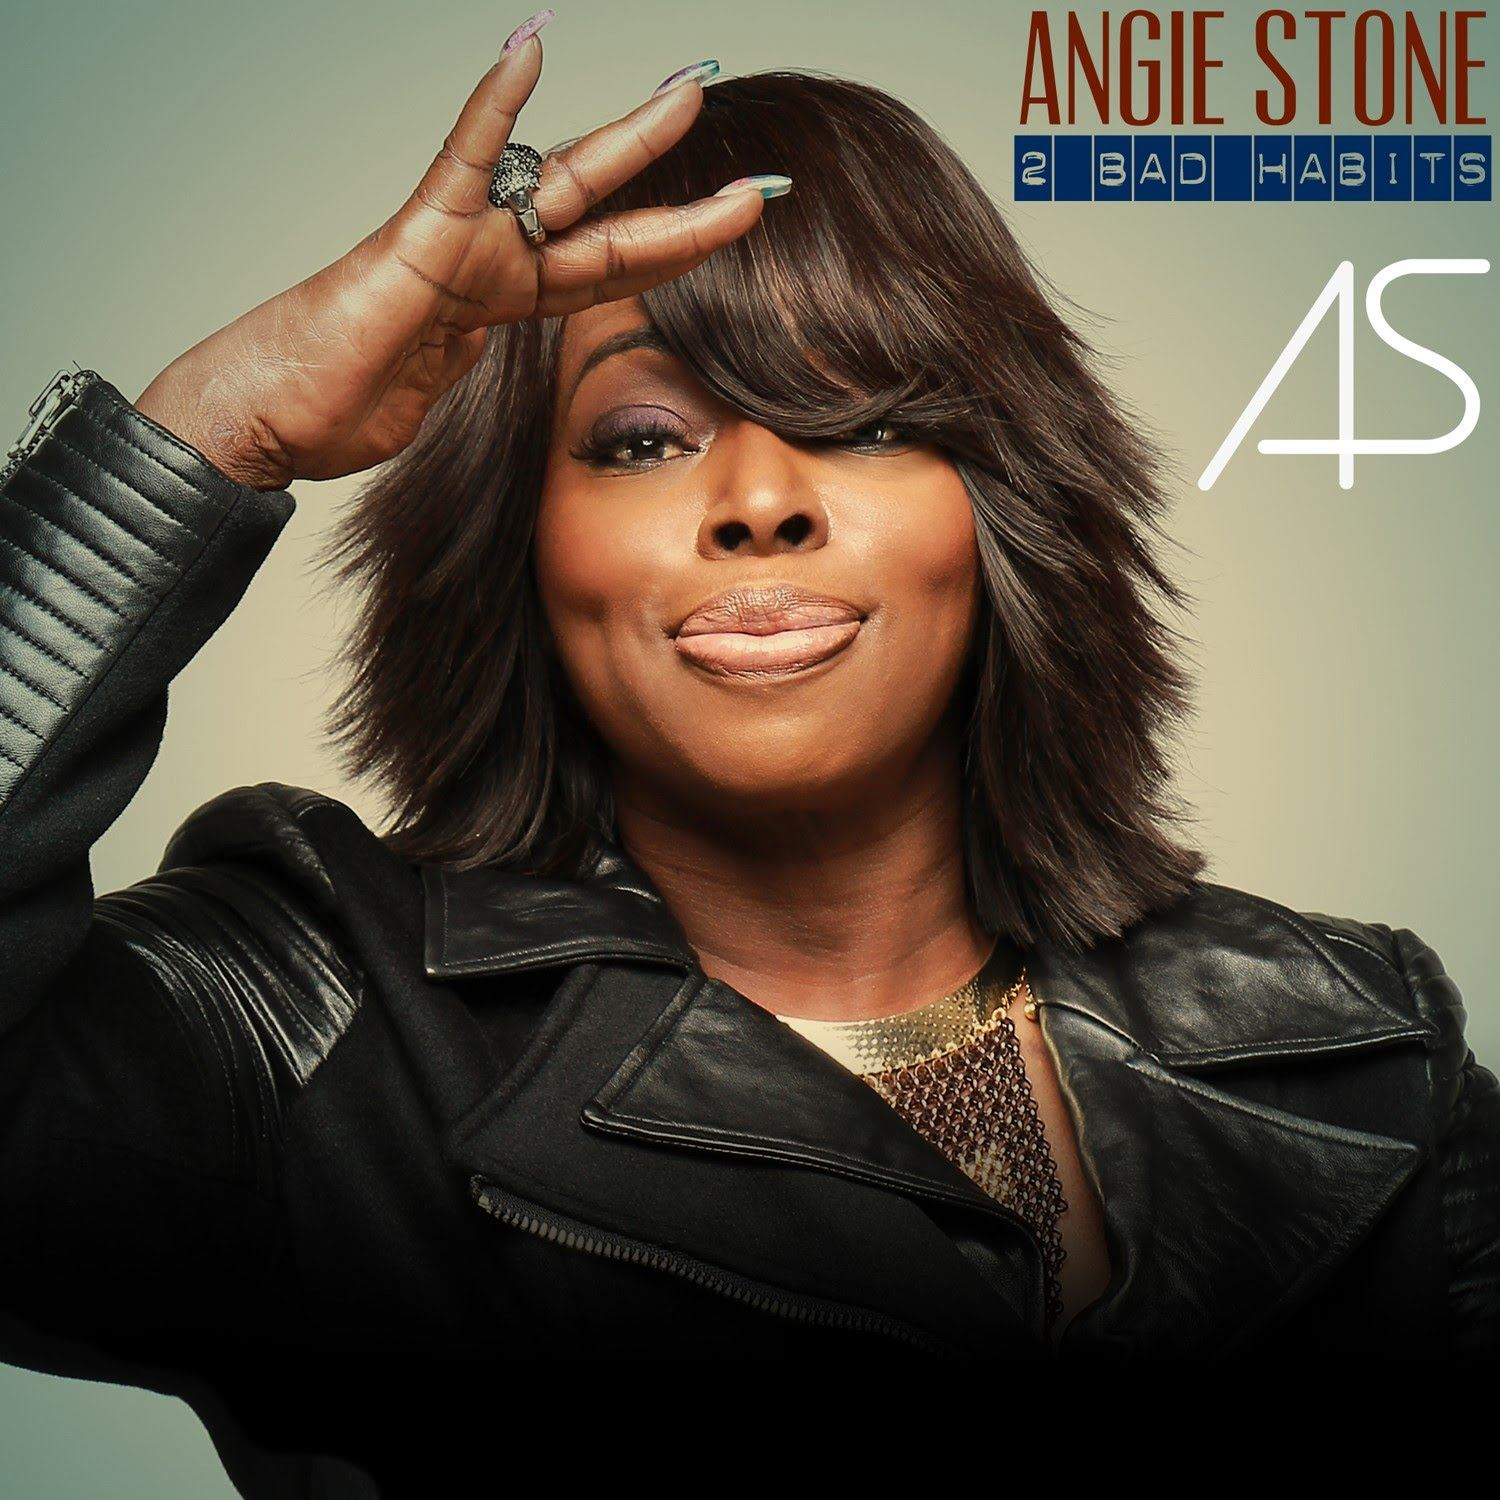 Angie Stone 2 Bad Habits Single